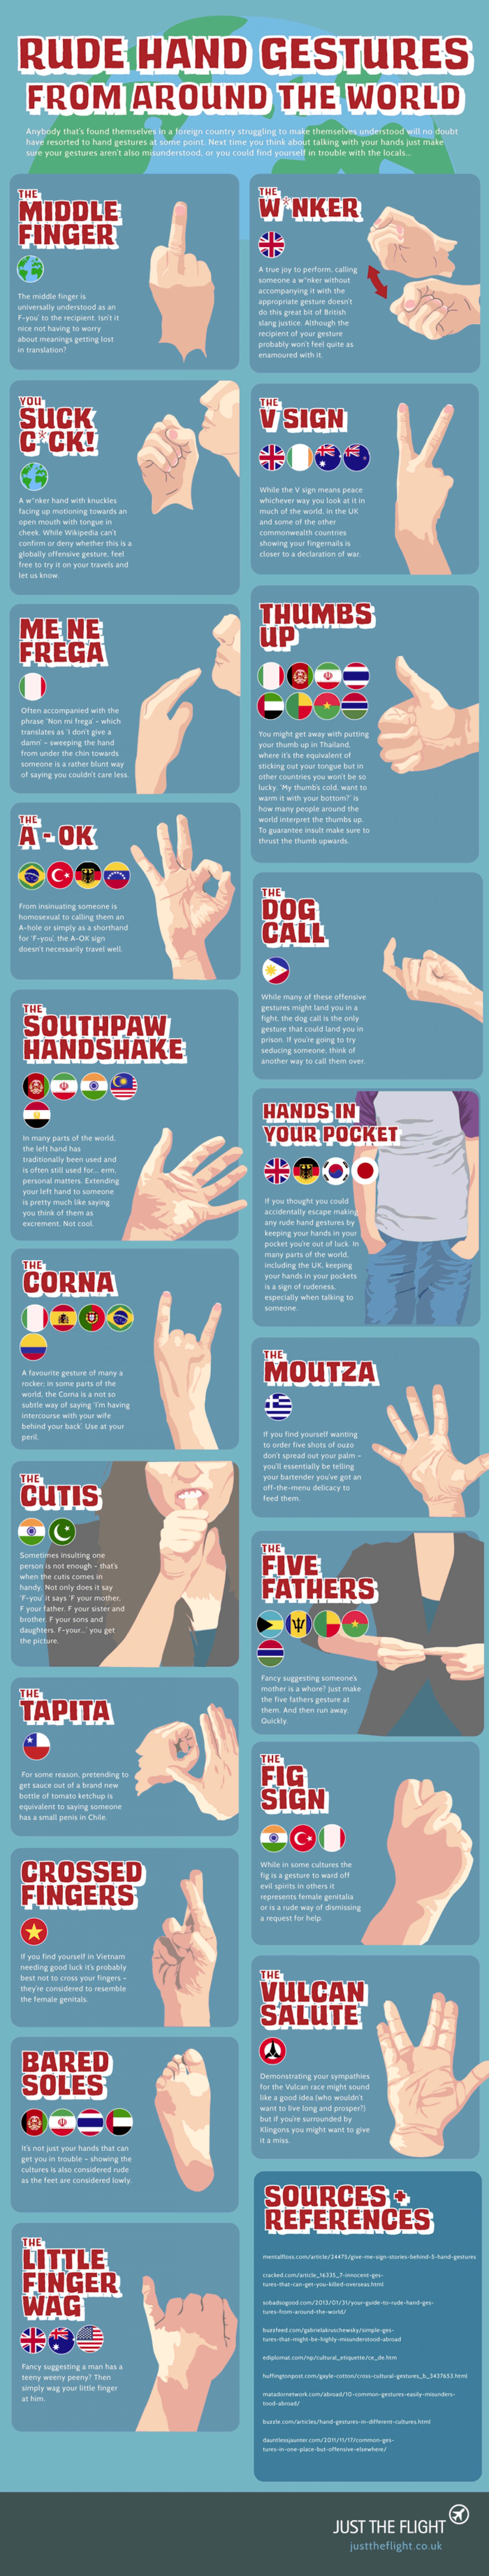 rude-hand-gestures-from-around-the-world_2